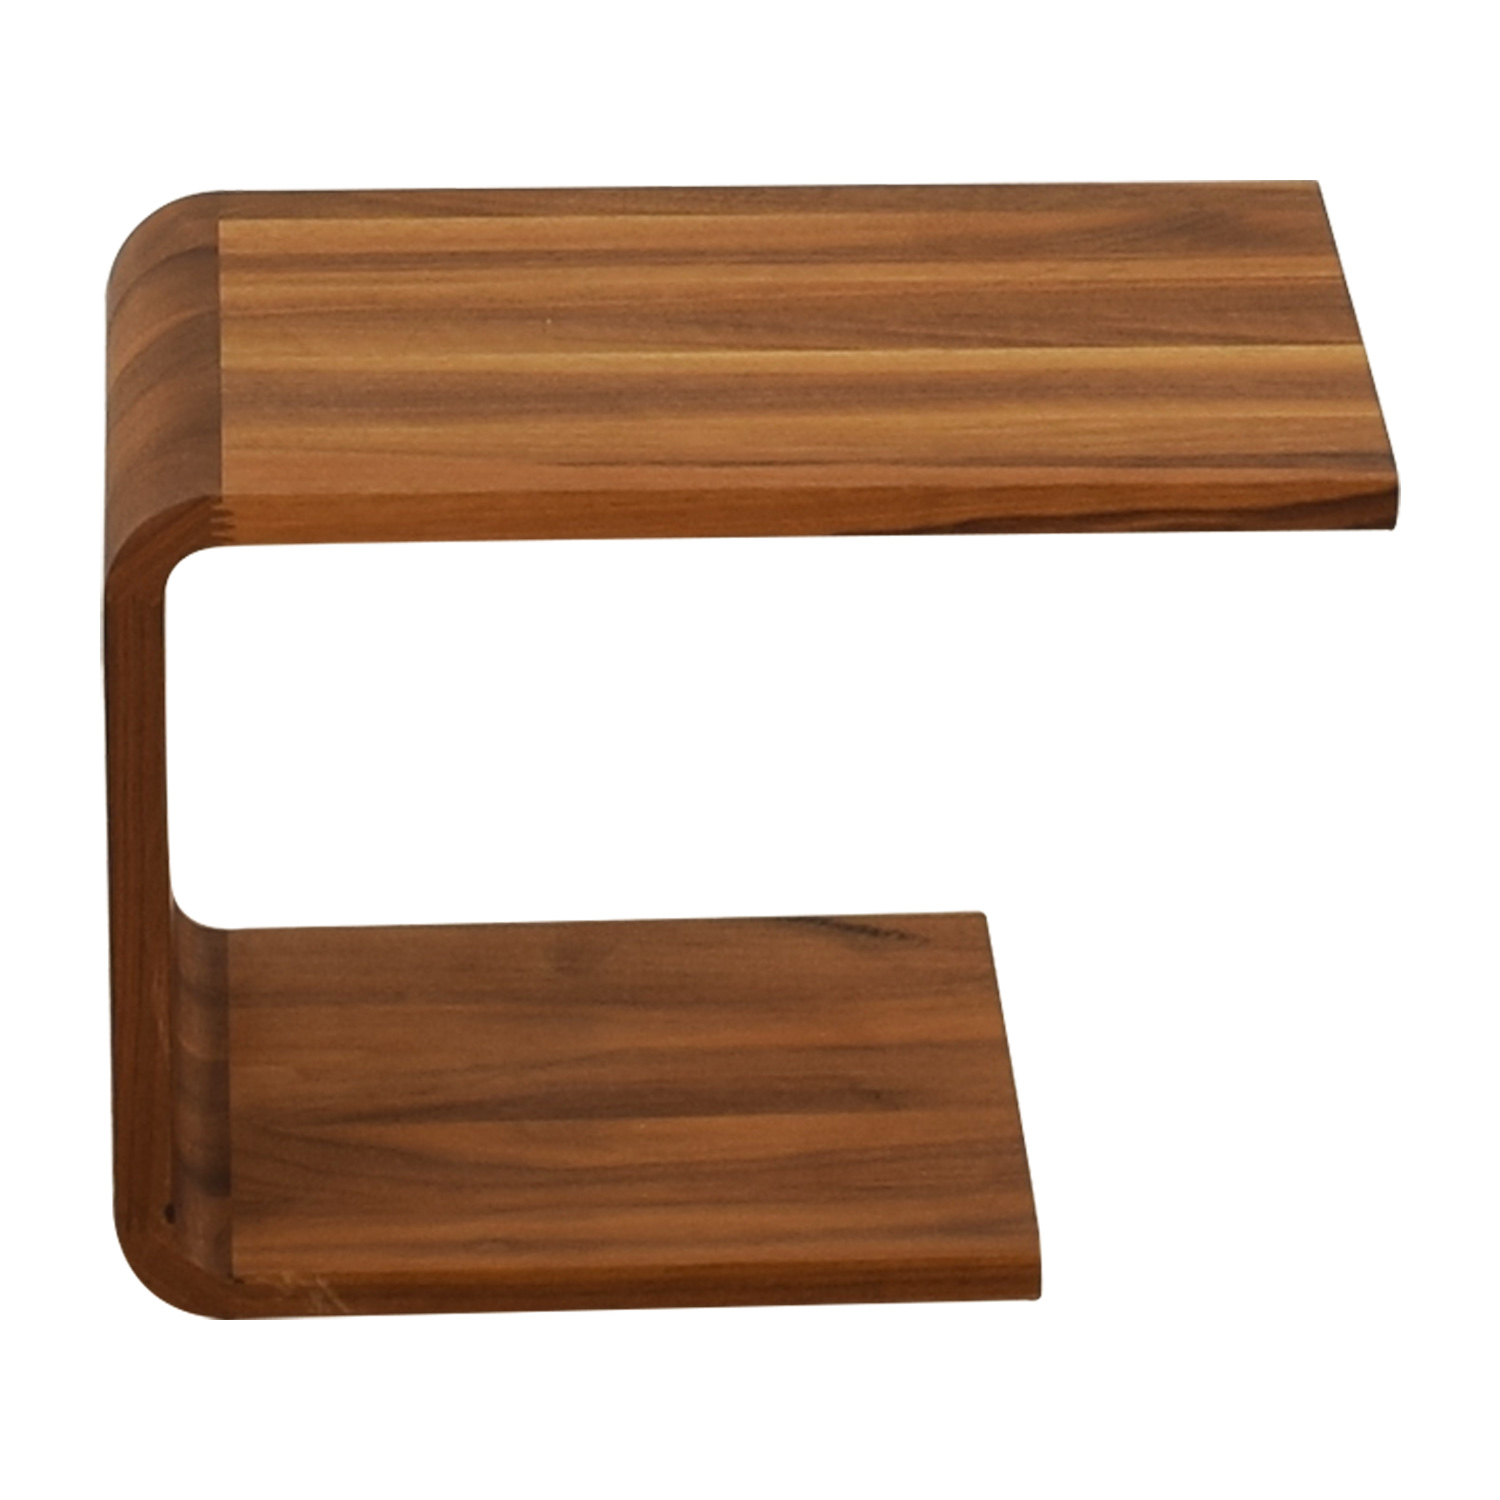 Zeitraum Zeitraum Formstelle Waiter Side Table Tables